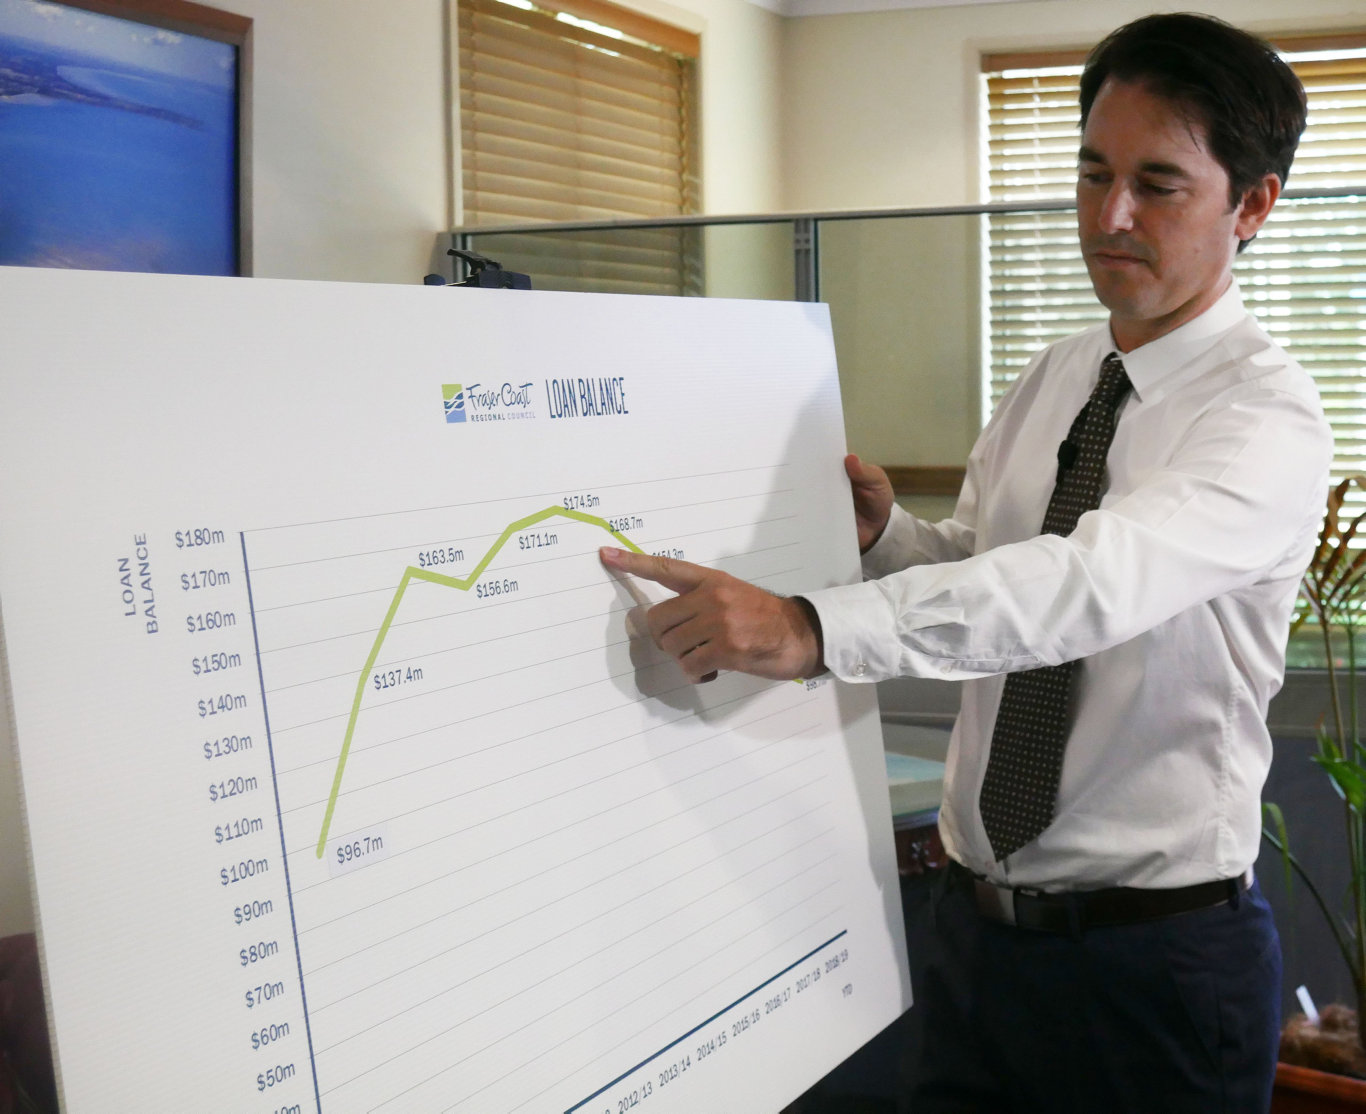 Fraser Coast Mayor George Seymour with a graph showing a decrease in the council's debt.